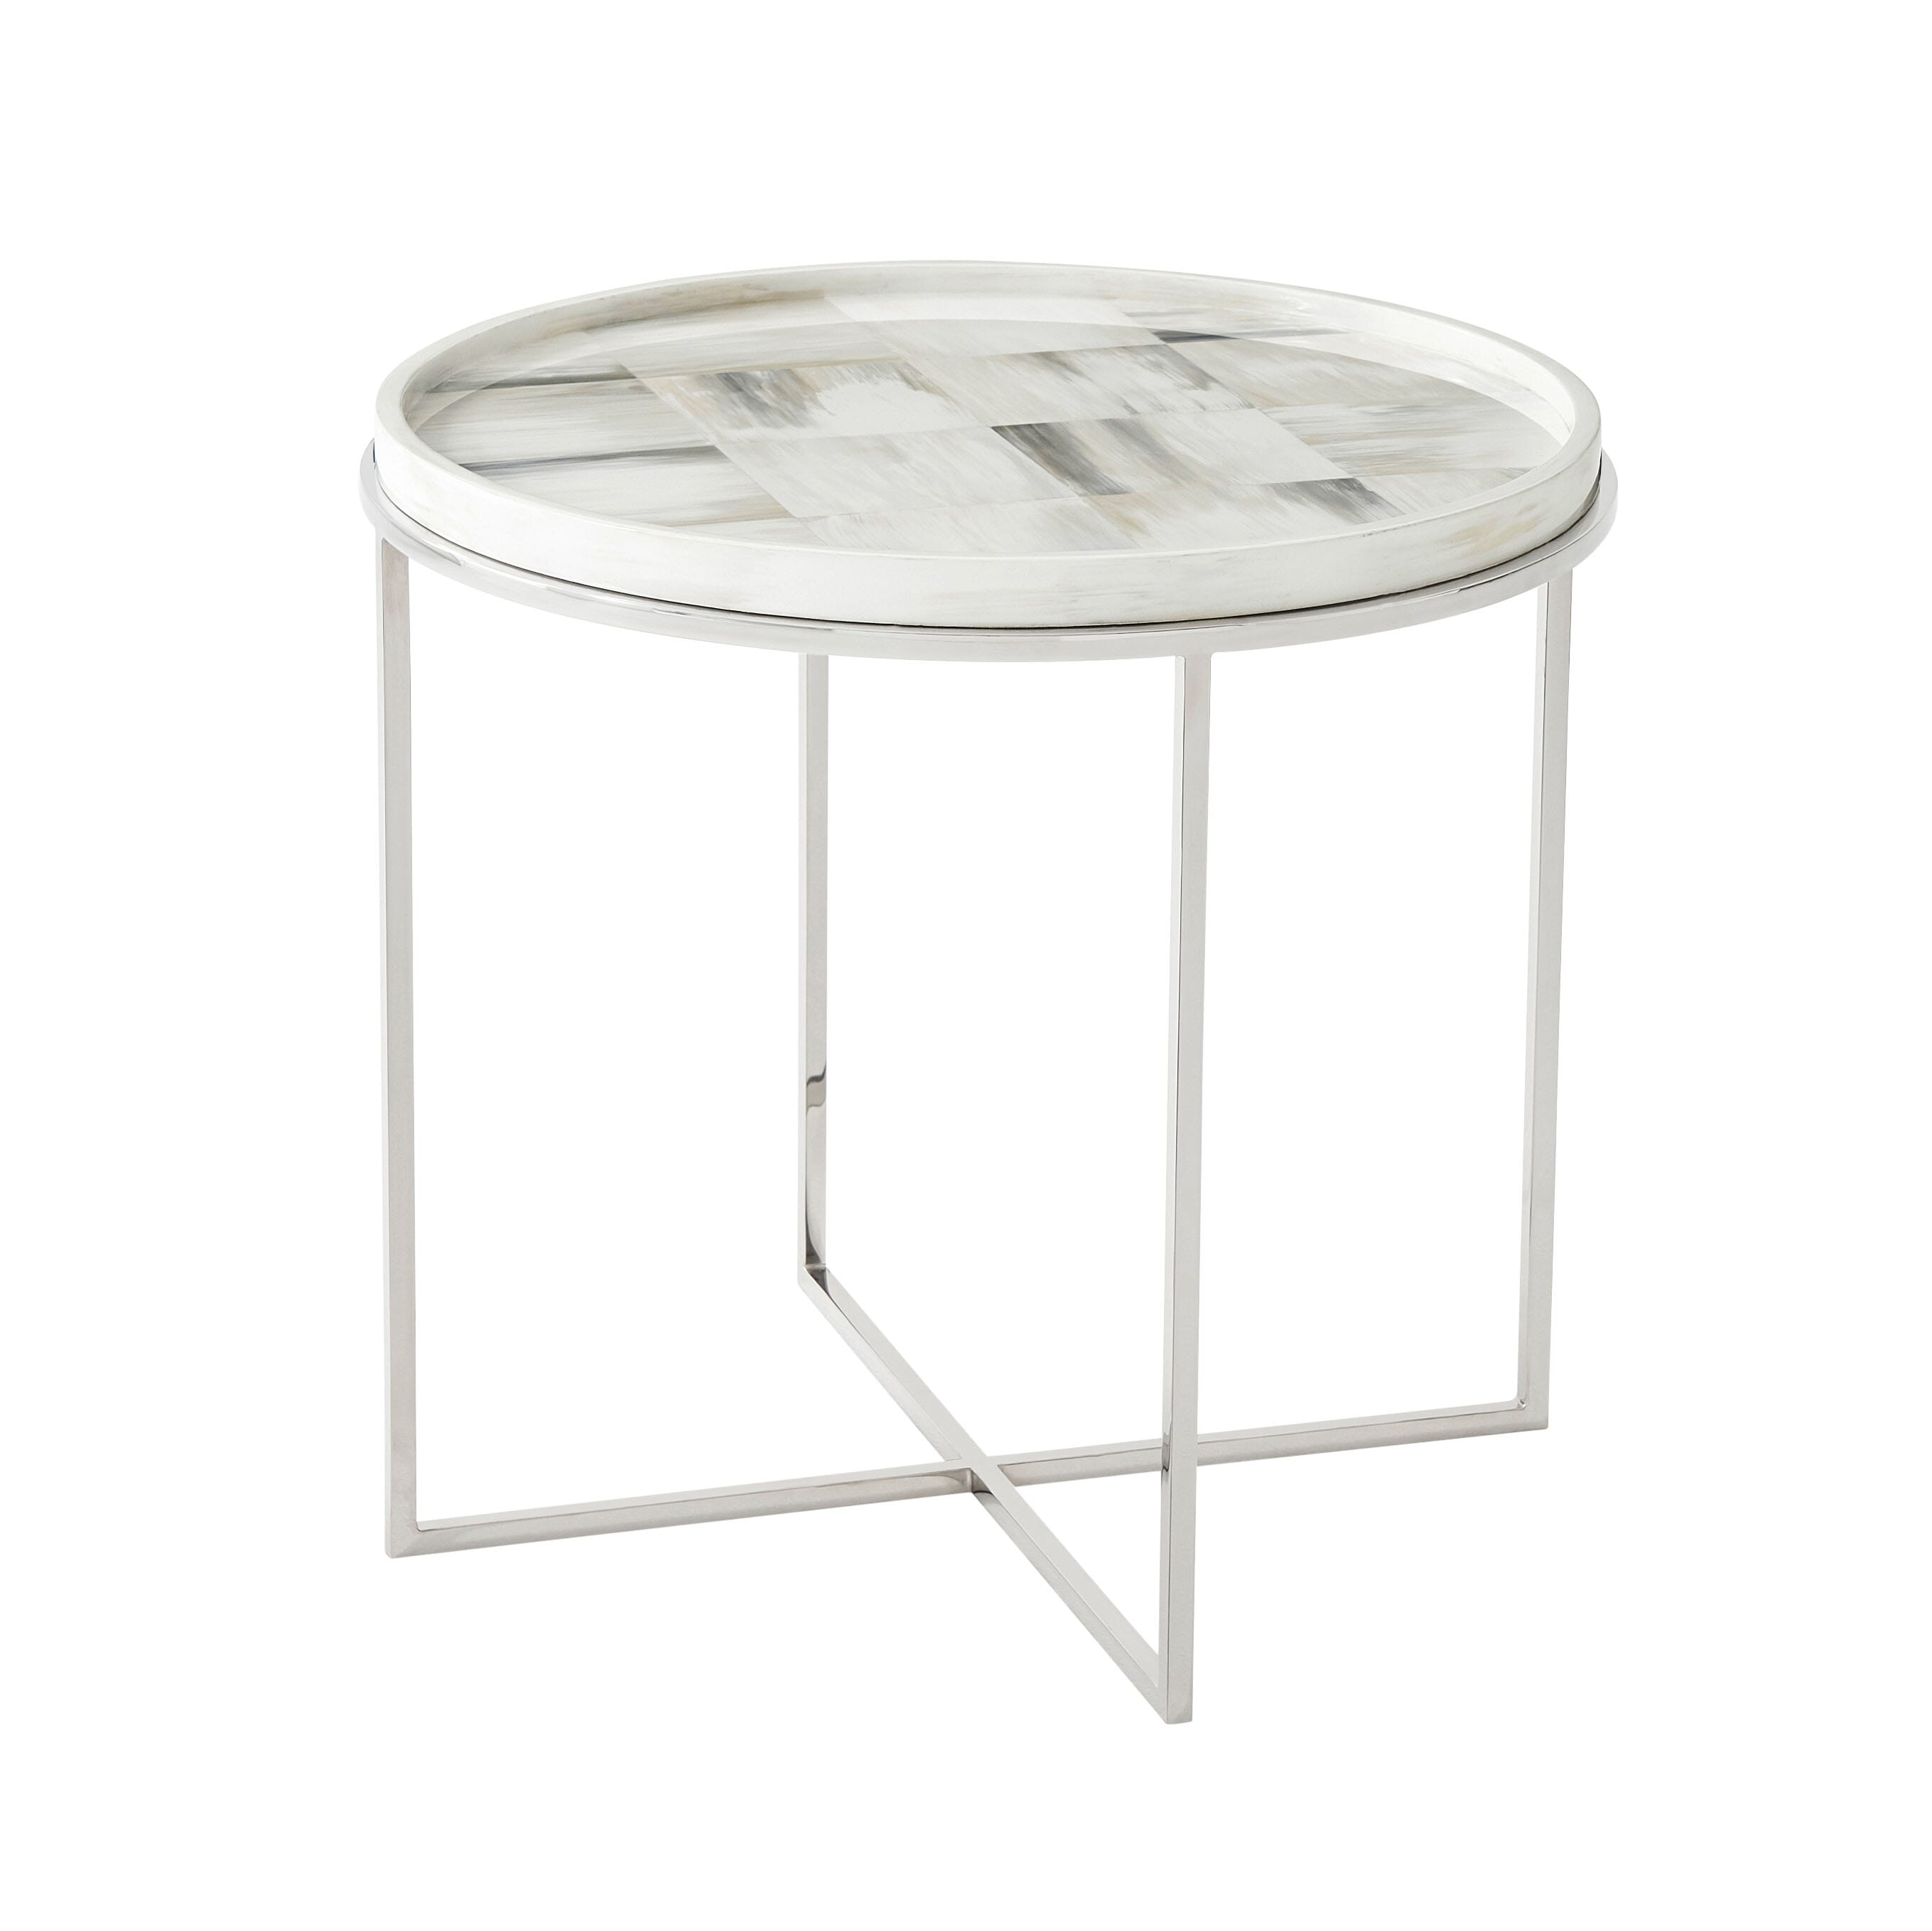 Quadrilaterals (Circular) Side Table